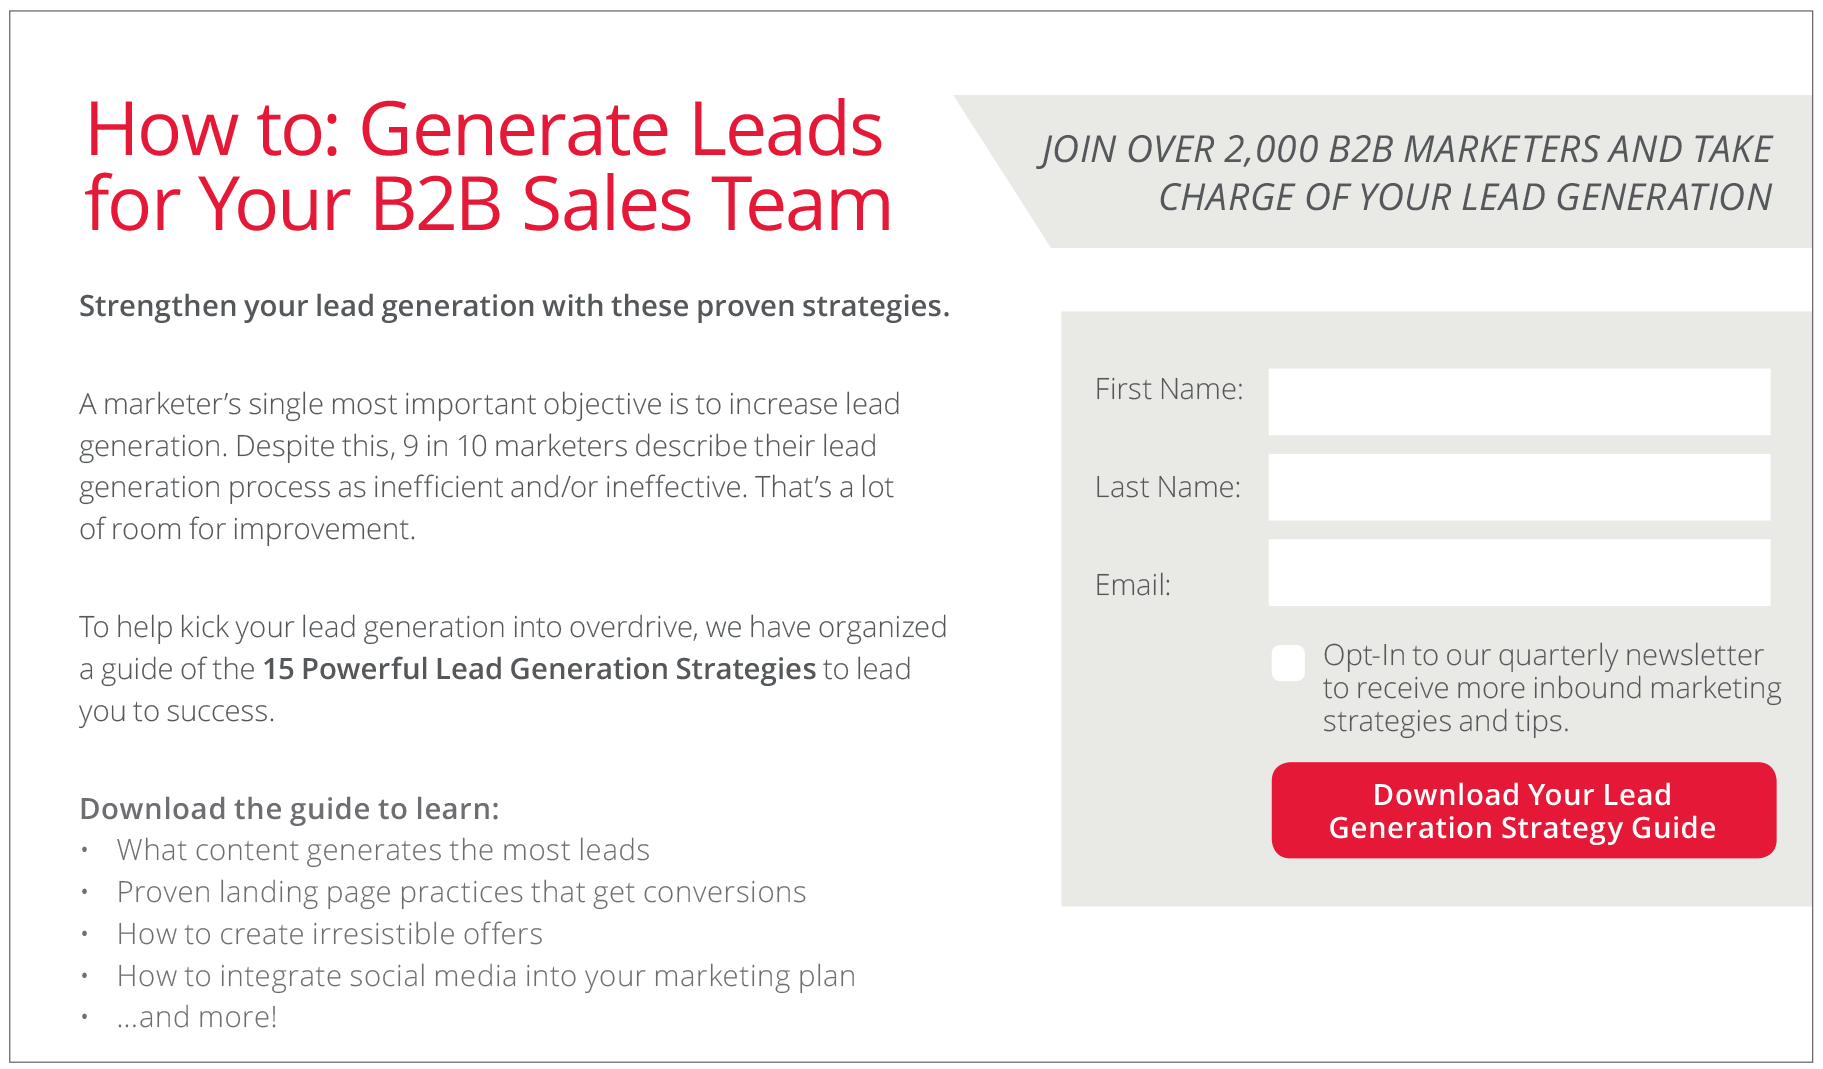 Advertise your success for more leads